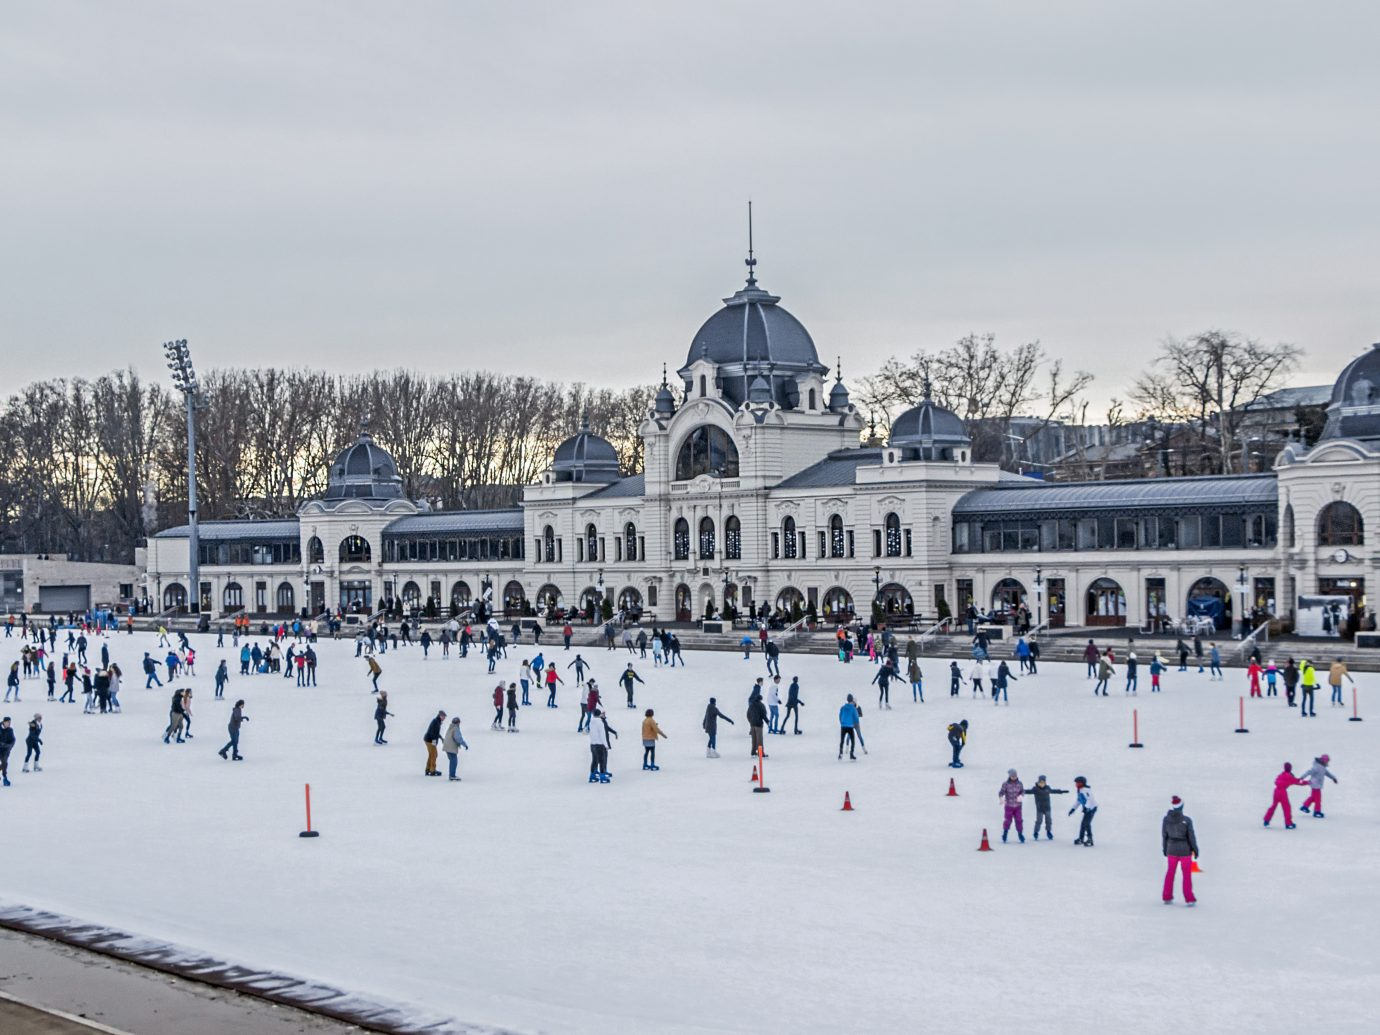 People ice skating outdoor in Budapest, Hungary.